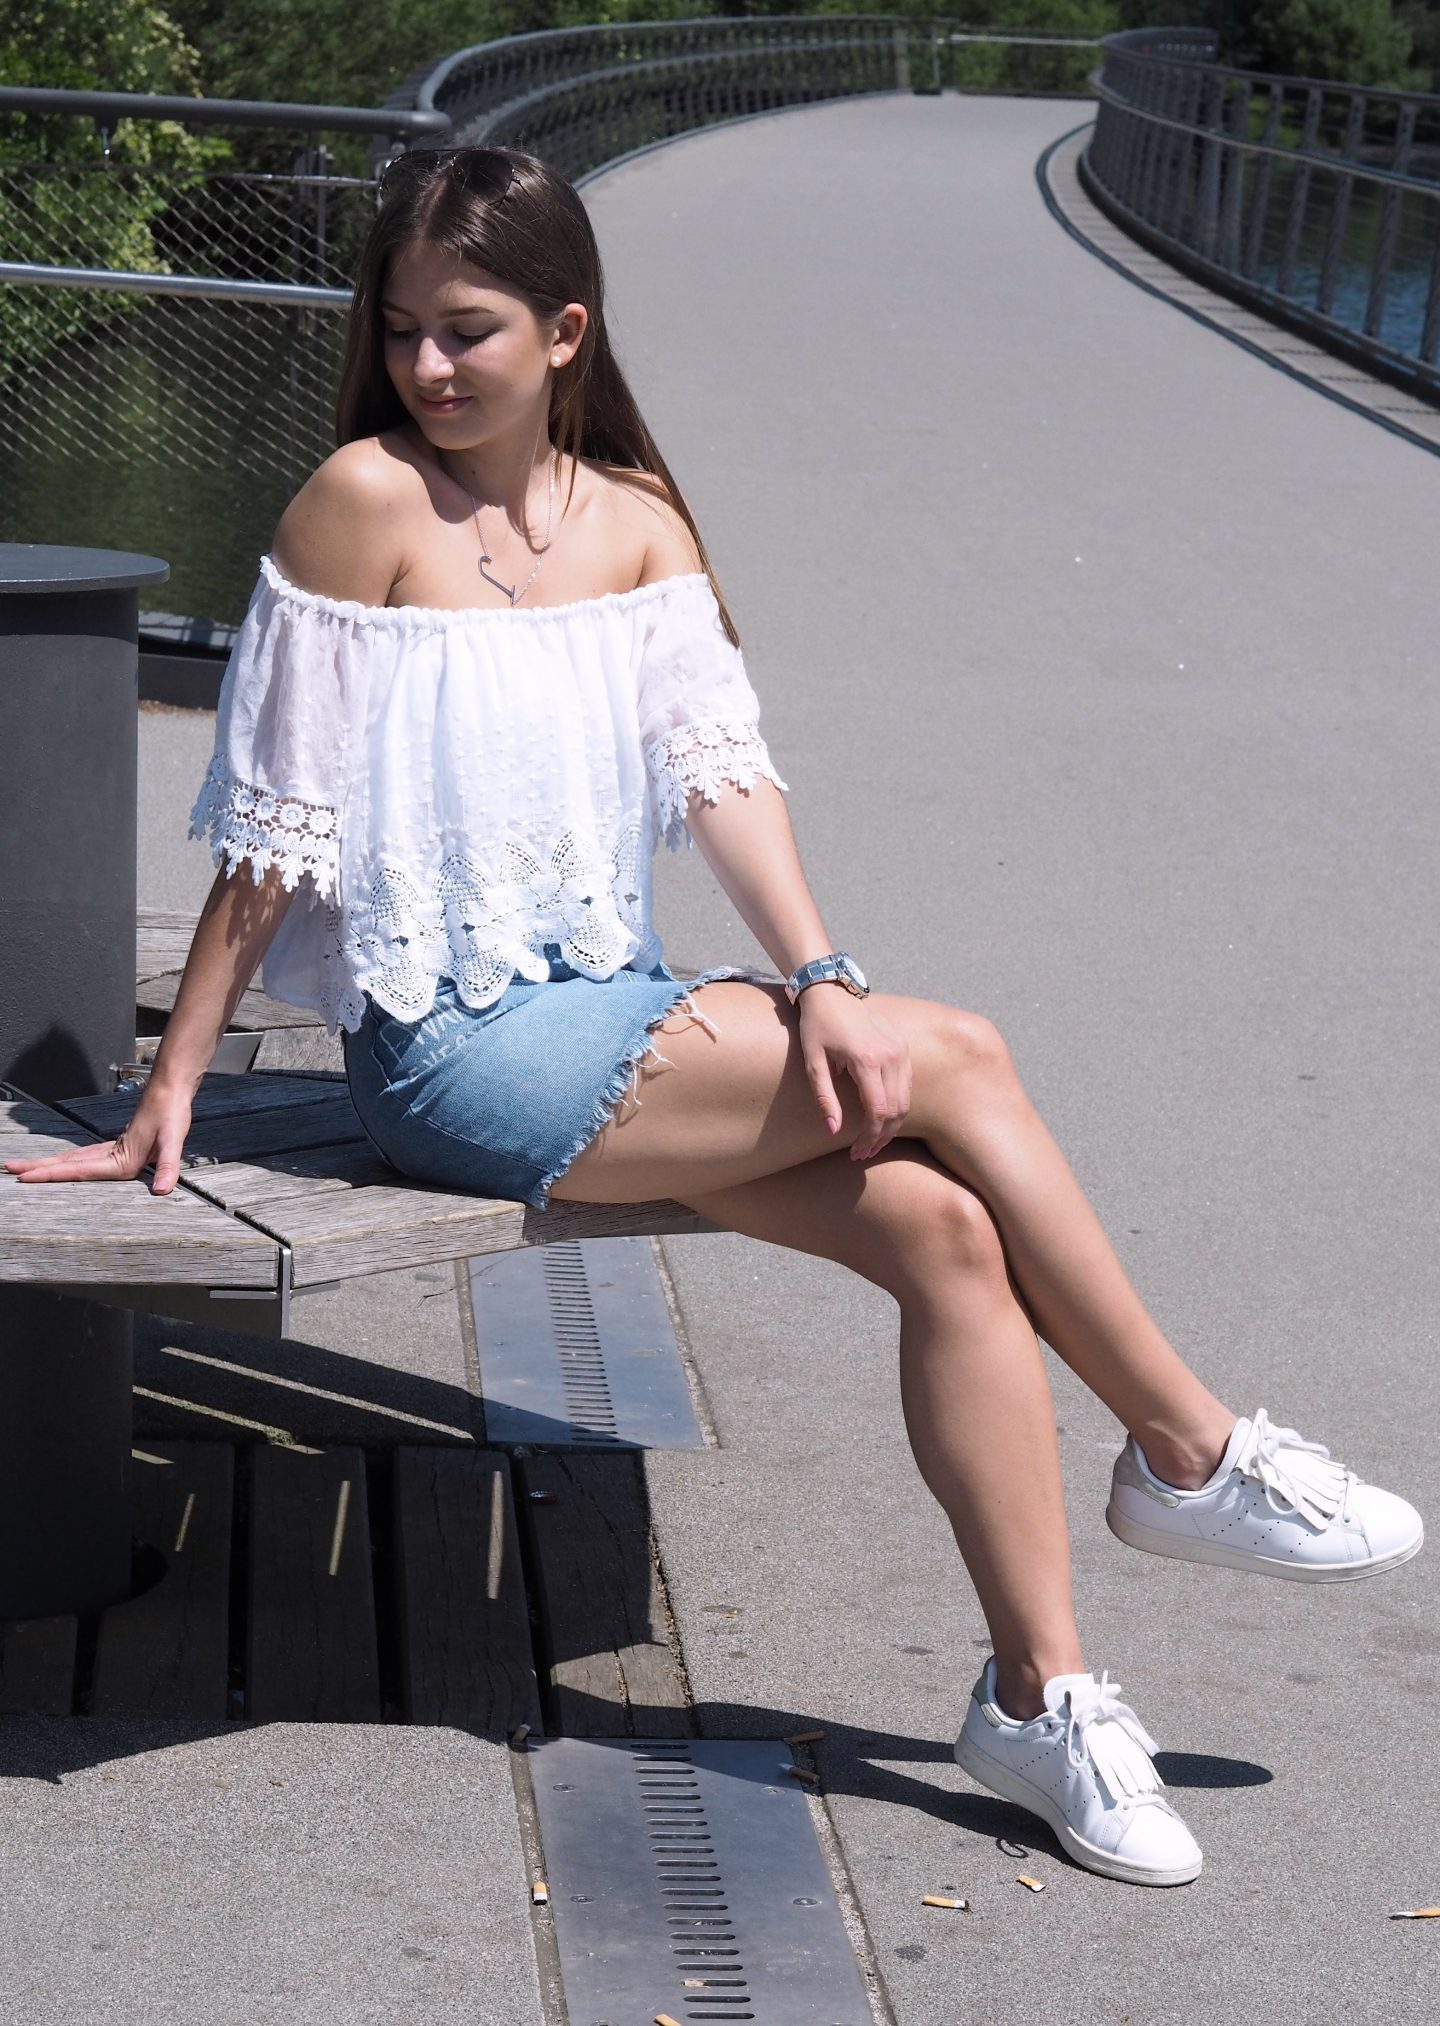 cd32f2105 Women's Silver Watch, White Fringe Leather Low Top Sneakers, Light Blue  Denim Mini Skirt, White Lace Off Shoulder Top   Women's Fashion   Lookastic  UK